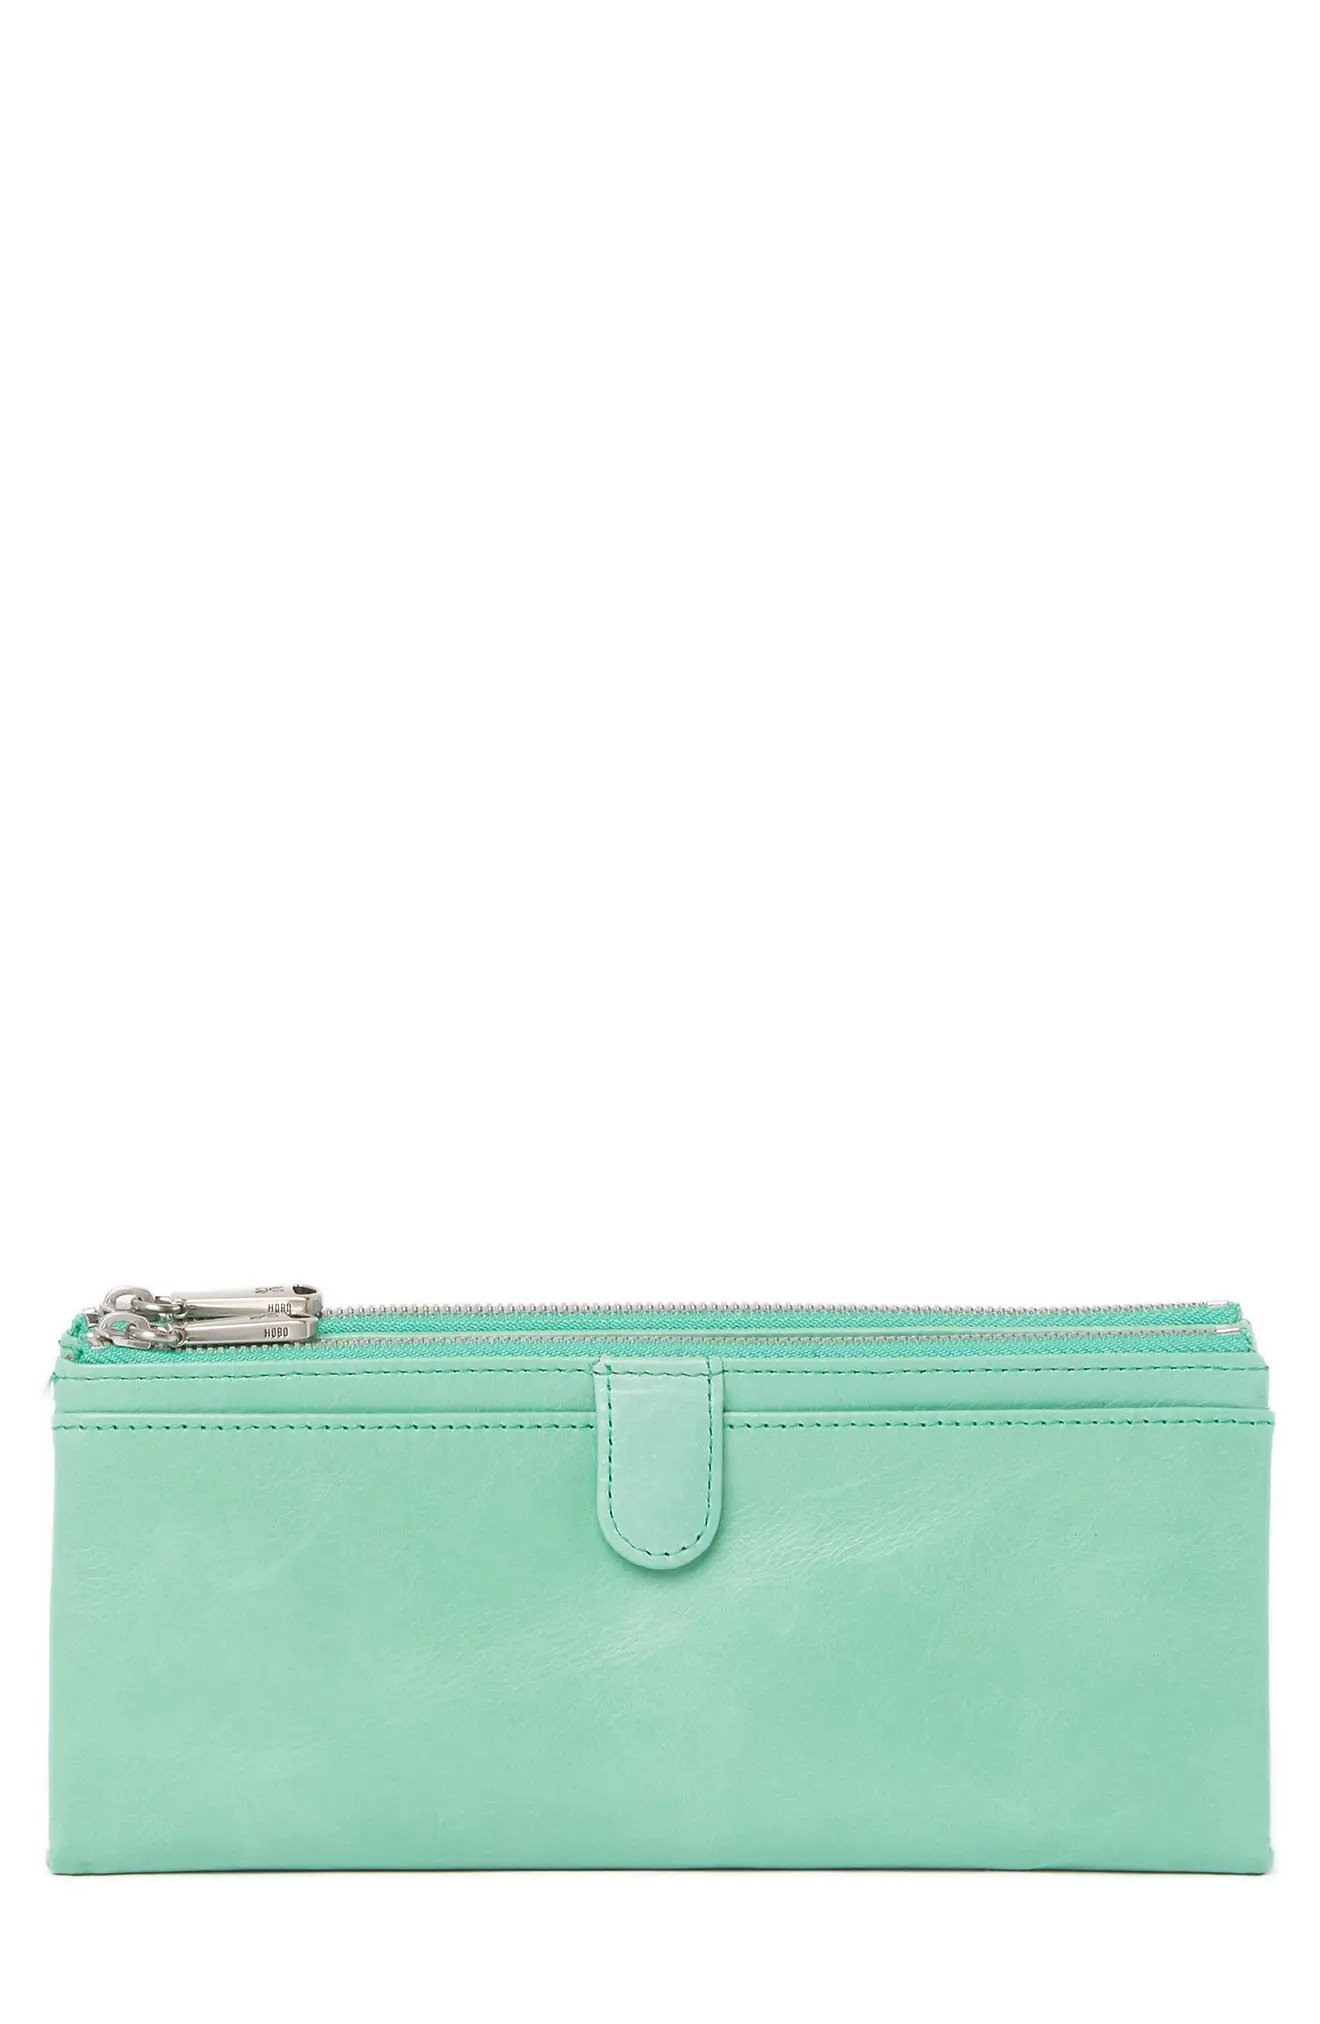 12800 60 off FREE SHIPPING ON ORDERS 89. Hobo Taylor Glazed Leather Wallet In Mint At Nordstrom Rack Modesens